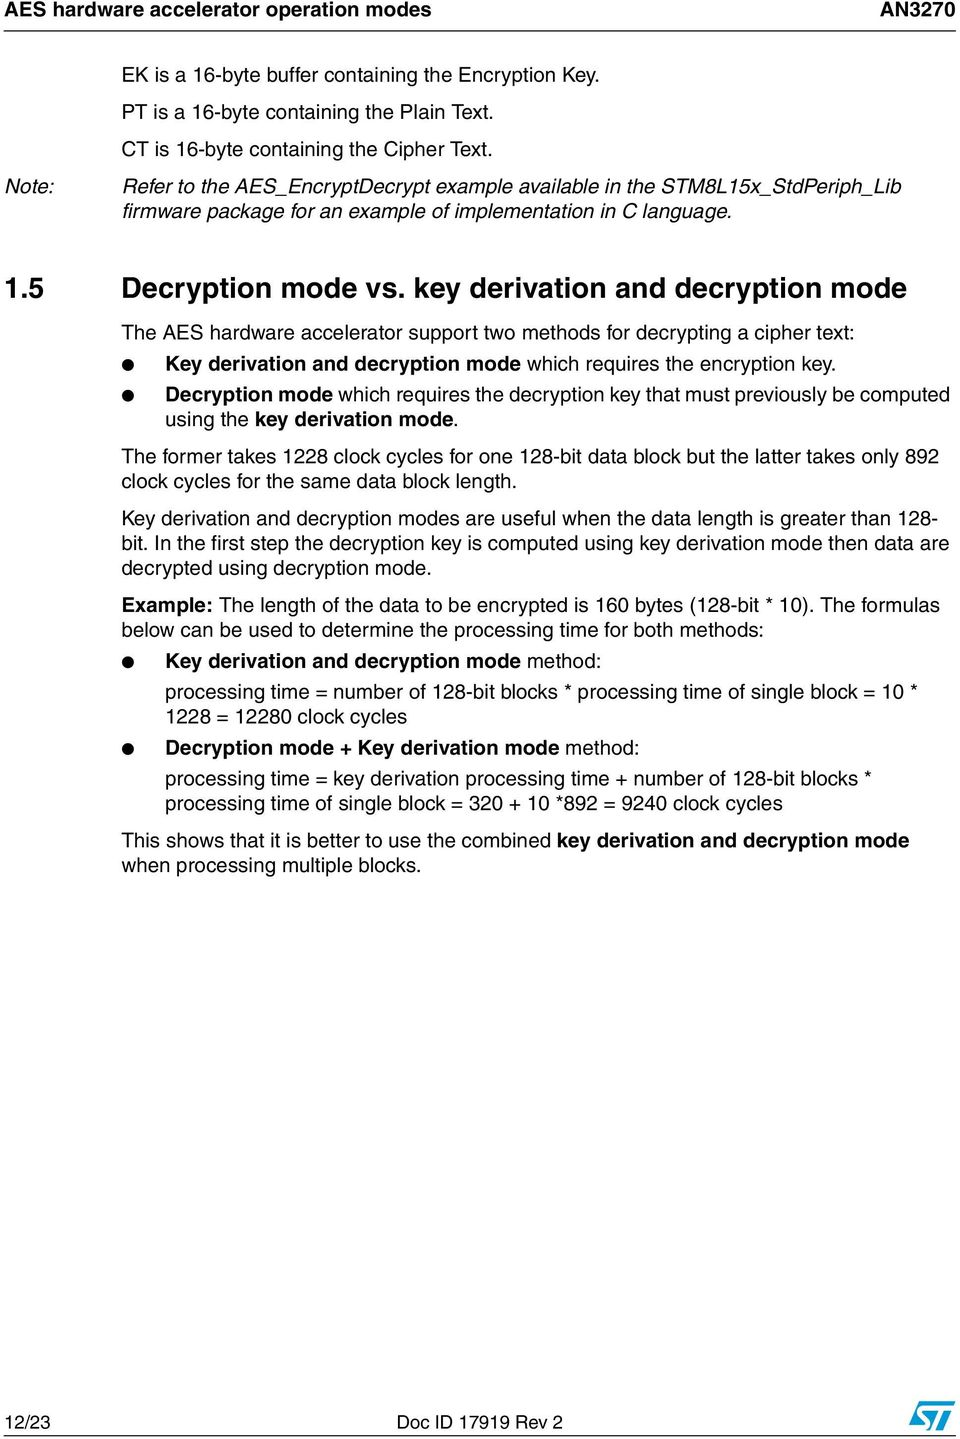 key derivation and decryption mode The AES hardware accelerator support two methods for decrypting a cipher text: Key derivation and decryption mode which requires the encryption key.